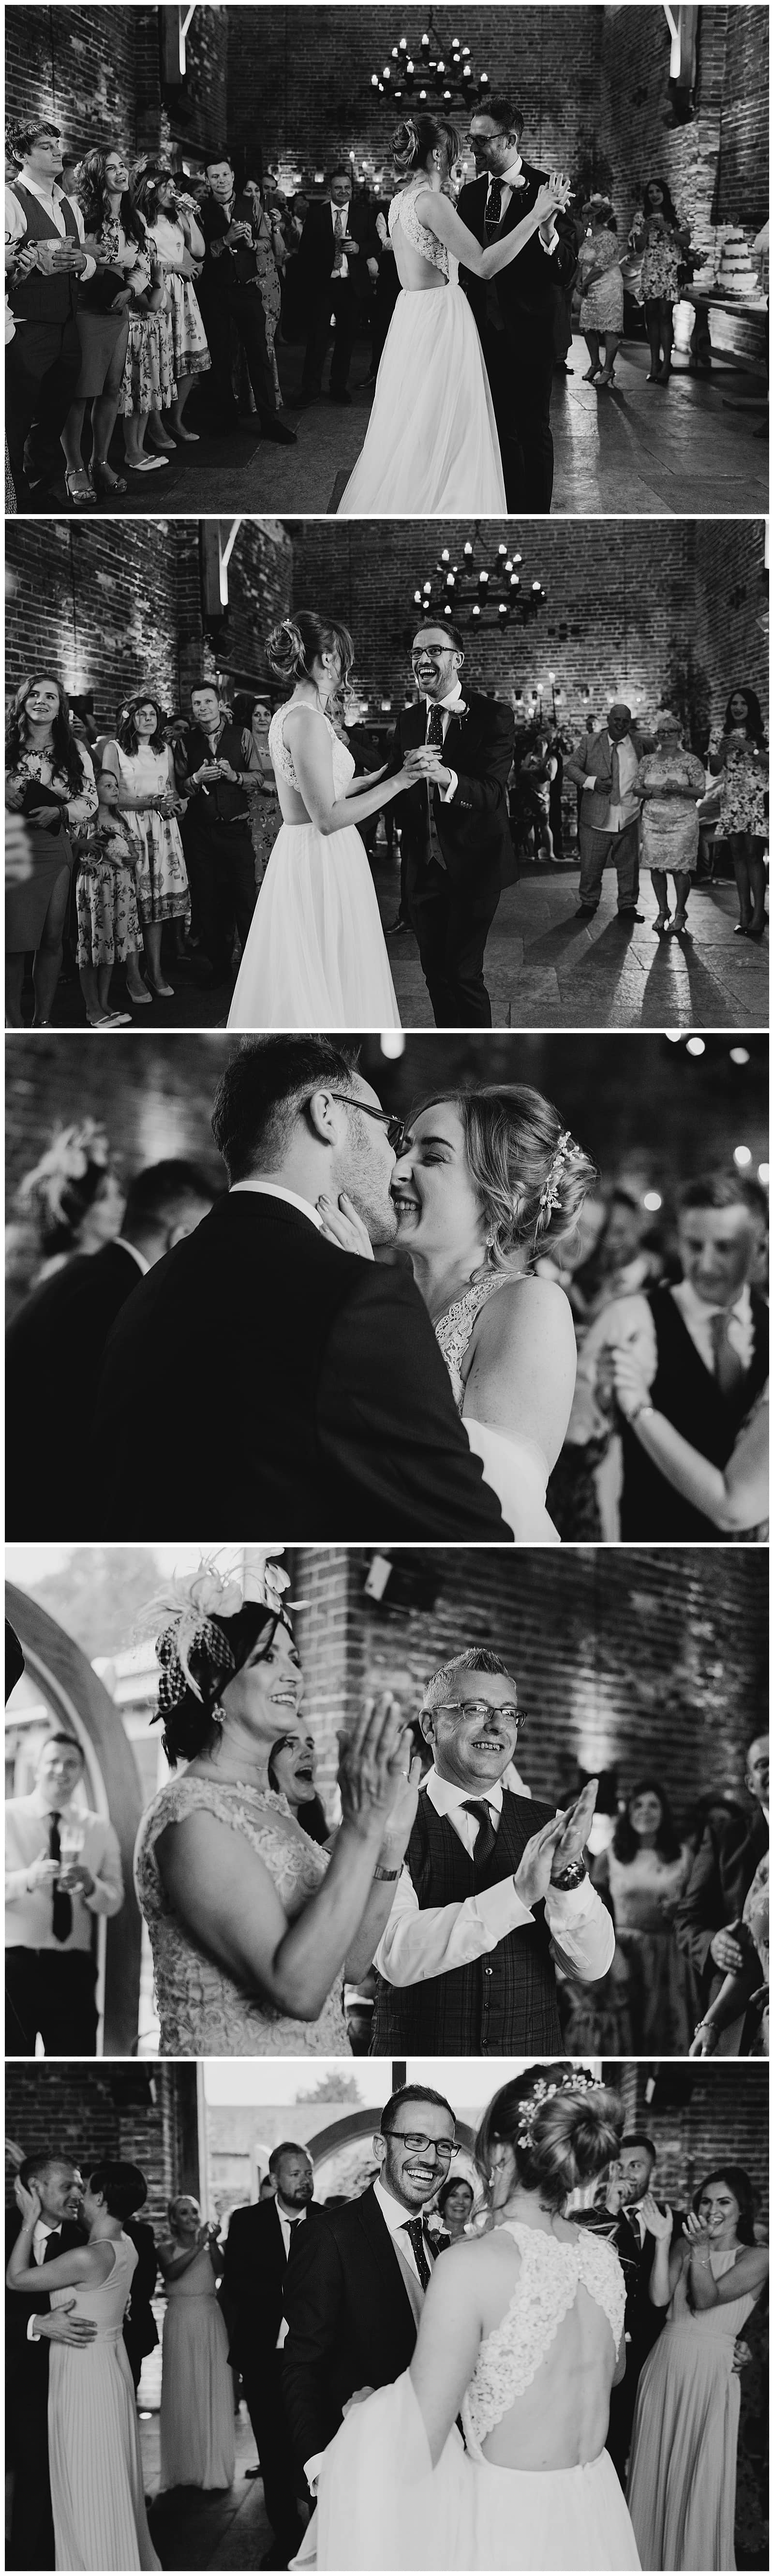 Wedding Photography at Hazel Gap Barn – awesome first dance